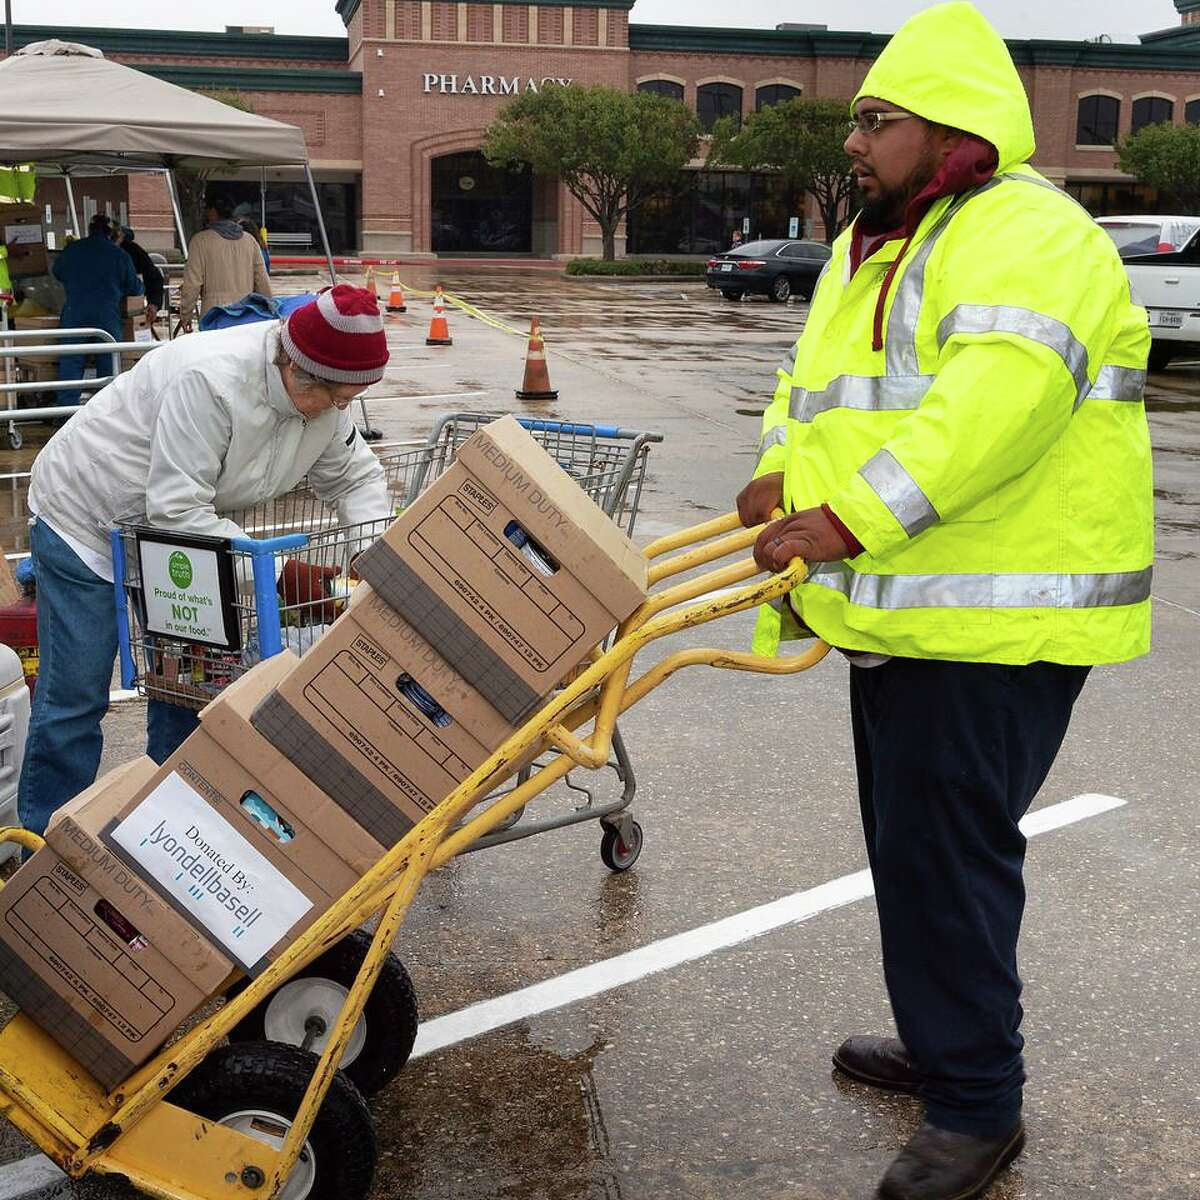 Volunteers work during a previous food drive by the city of Pasadena. This year's event will occur in the shadow of the coronavirus pandemic, which is affecting many local families, organizers say.